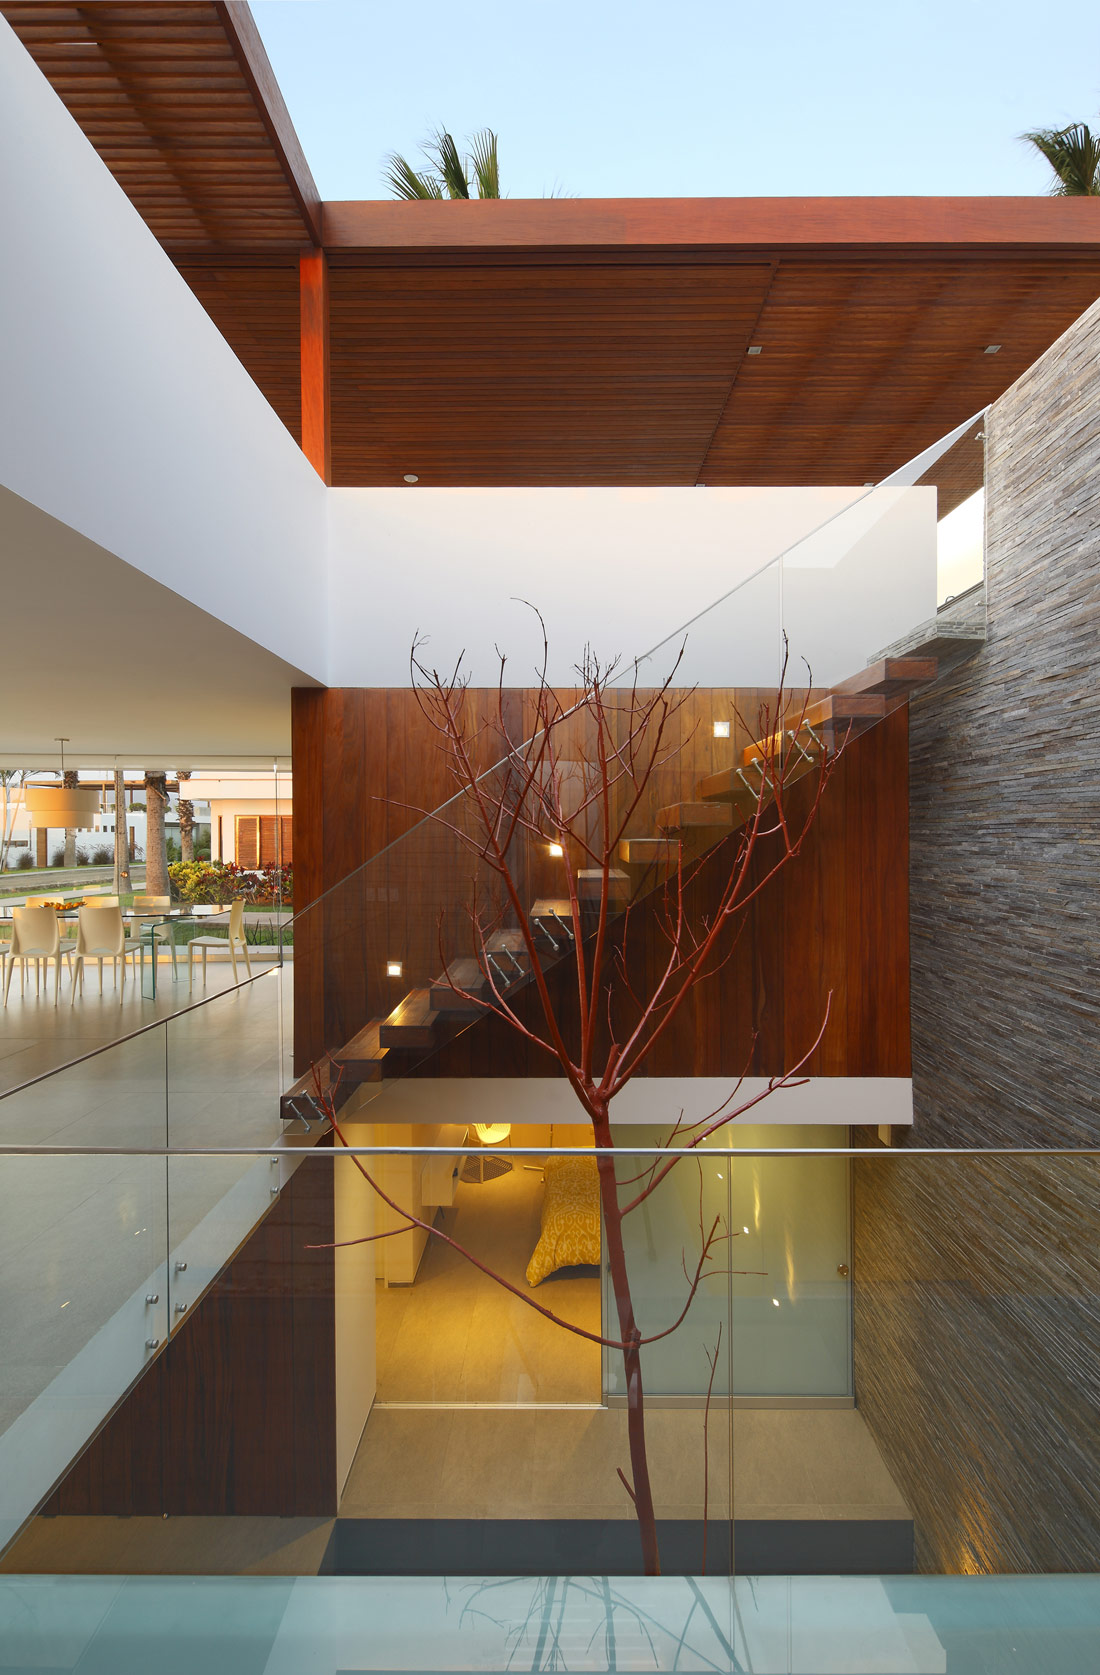 Glass Balustrading, Stairs, Stone Wall, Luxury Modern Home in Lima, Peru